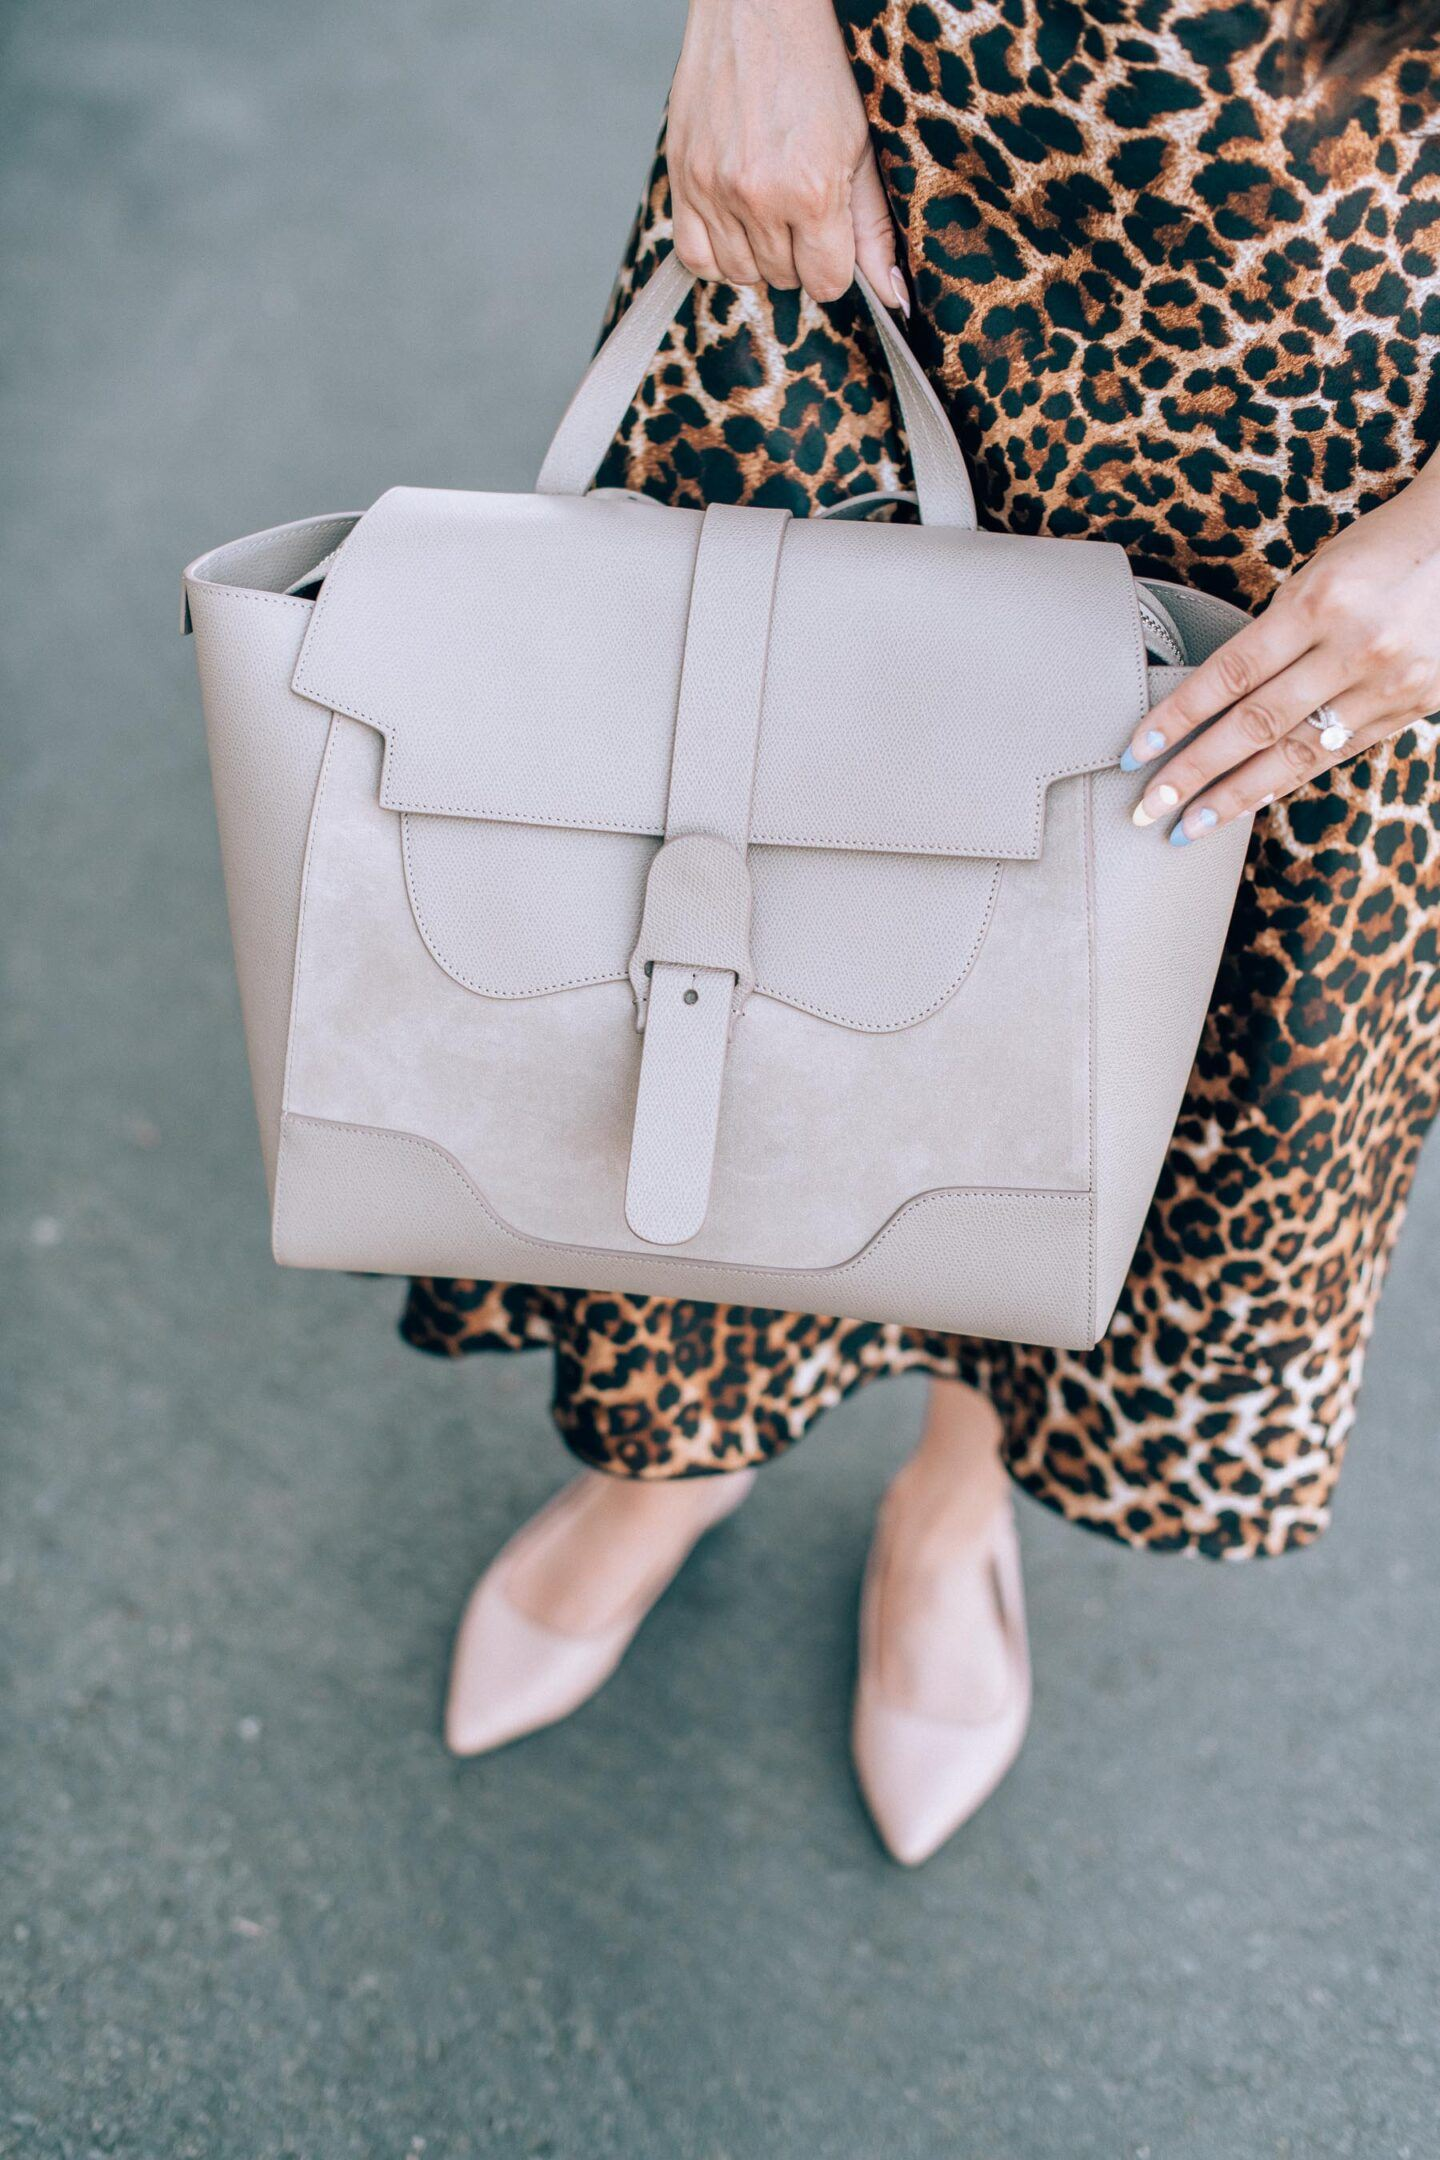 Maestra bags, by fashion blogger What The Fab